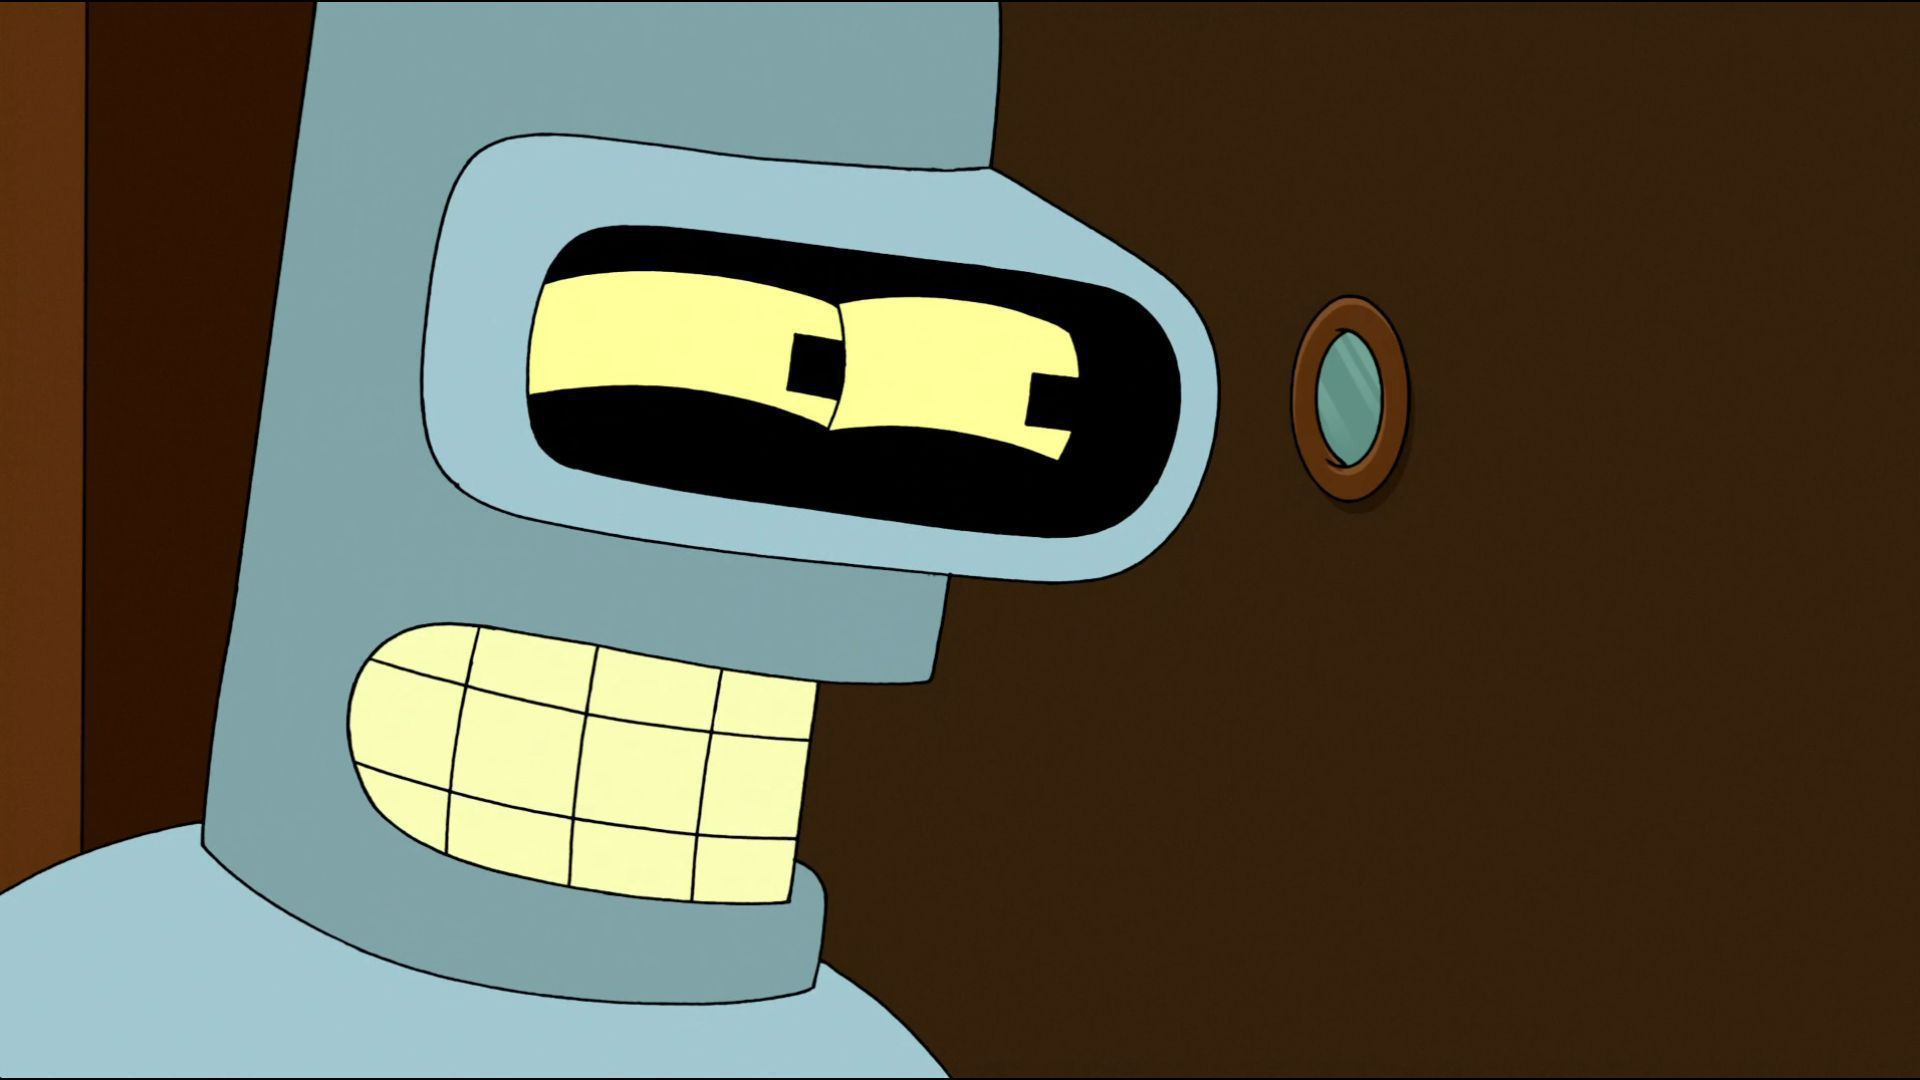 Bender wallpaper hd iphone